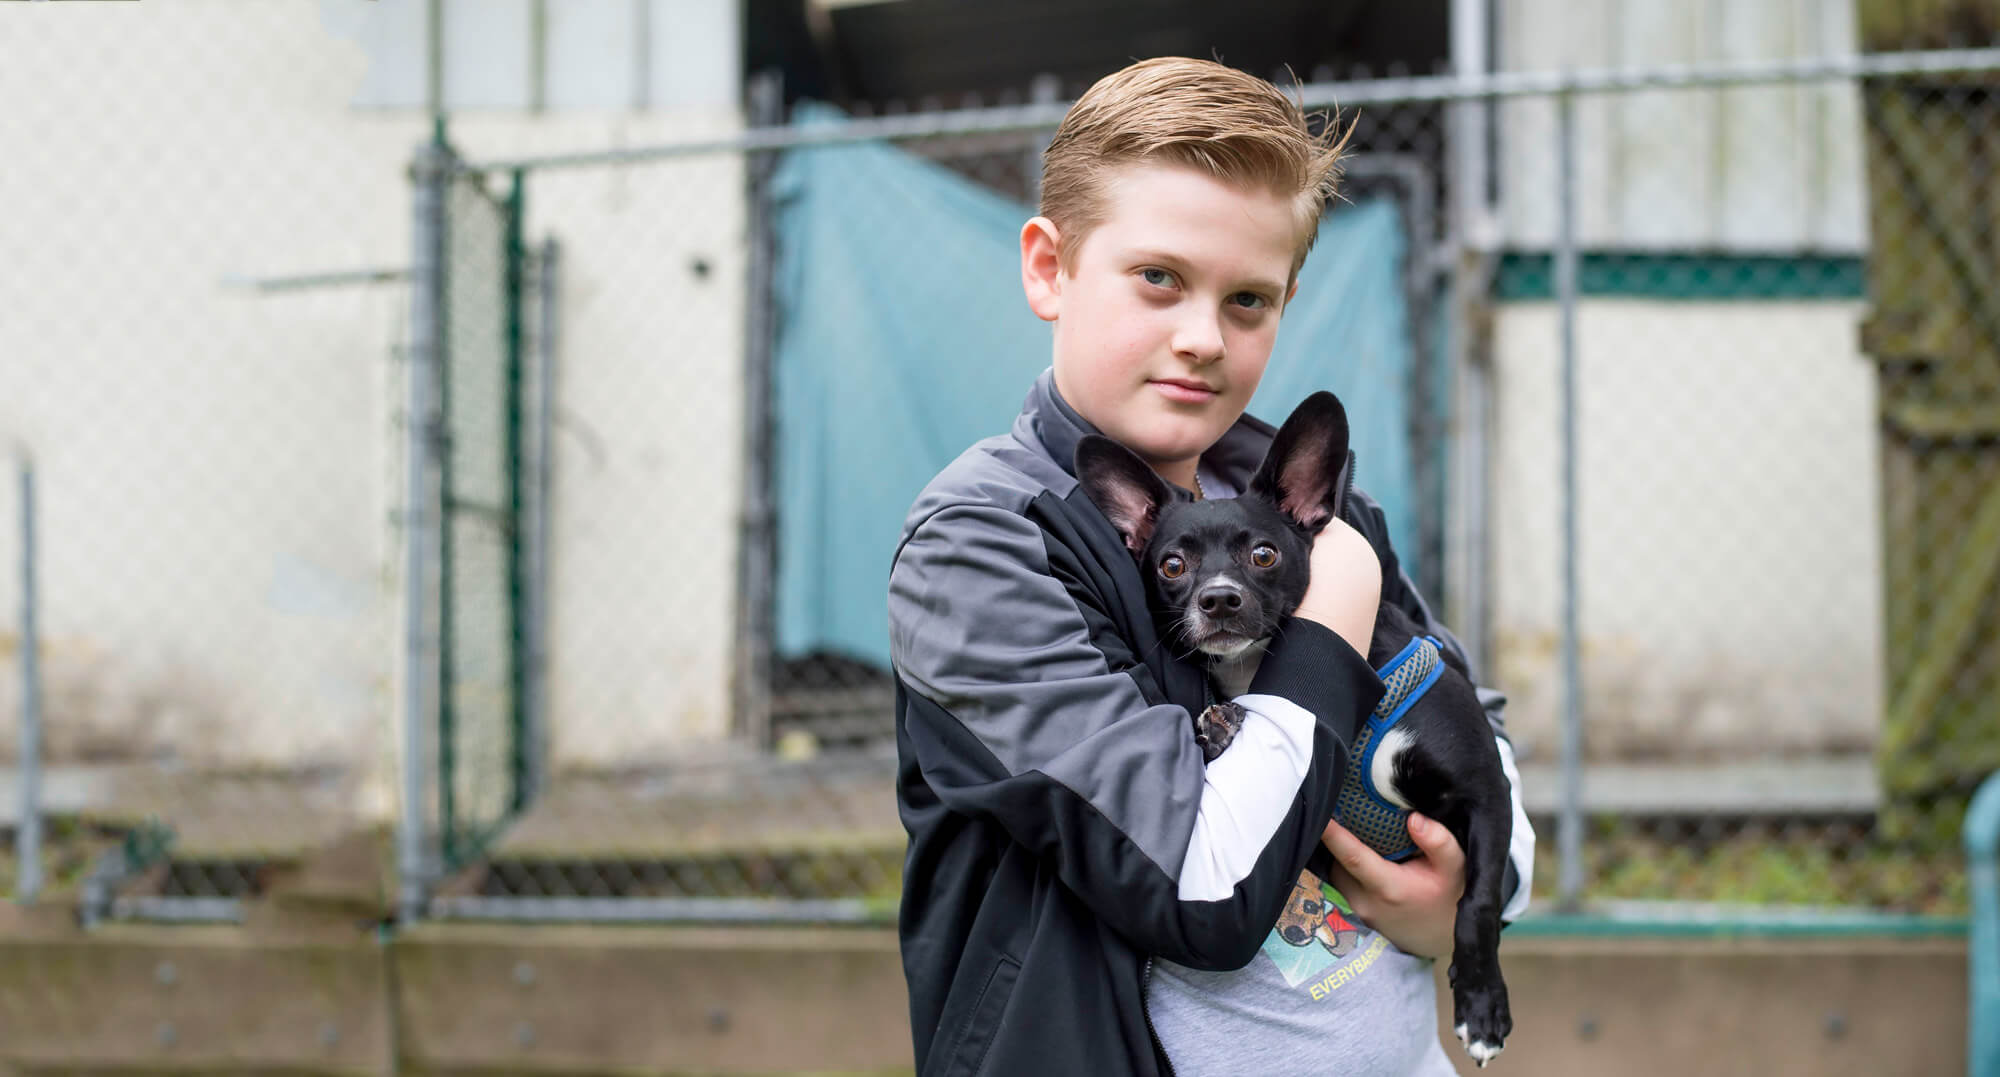 Young boy holding a small black dog